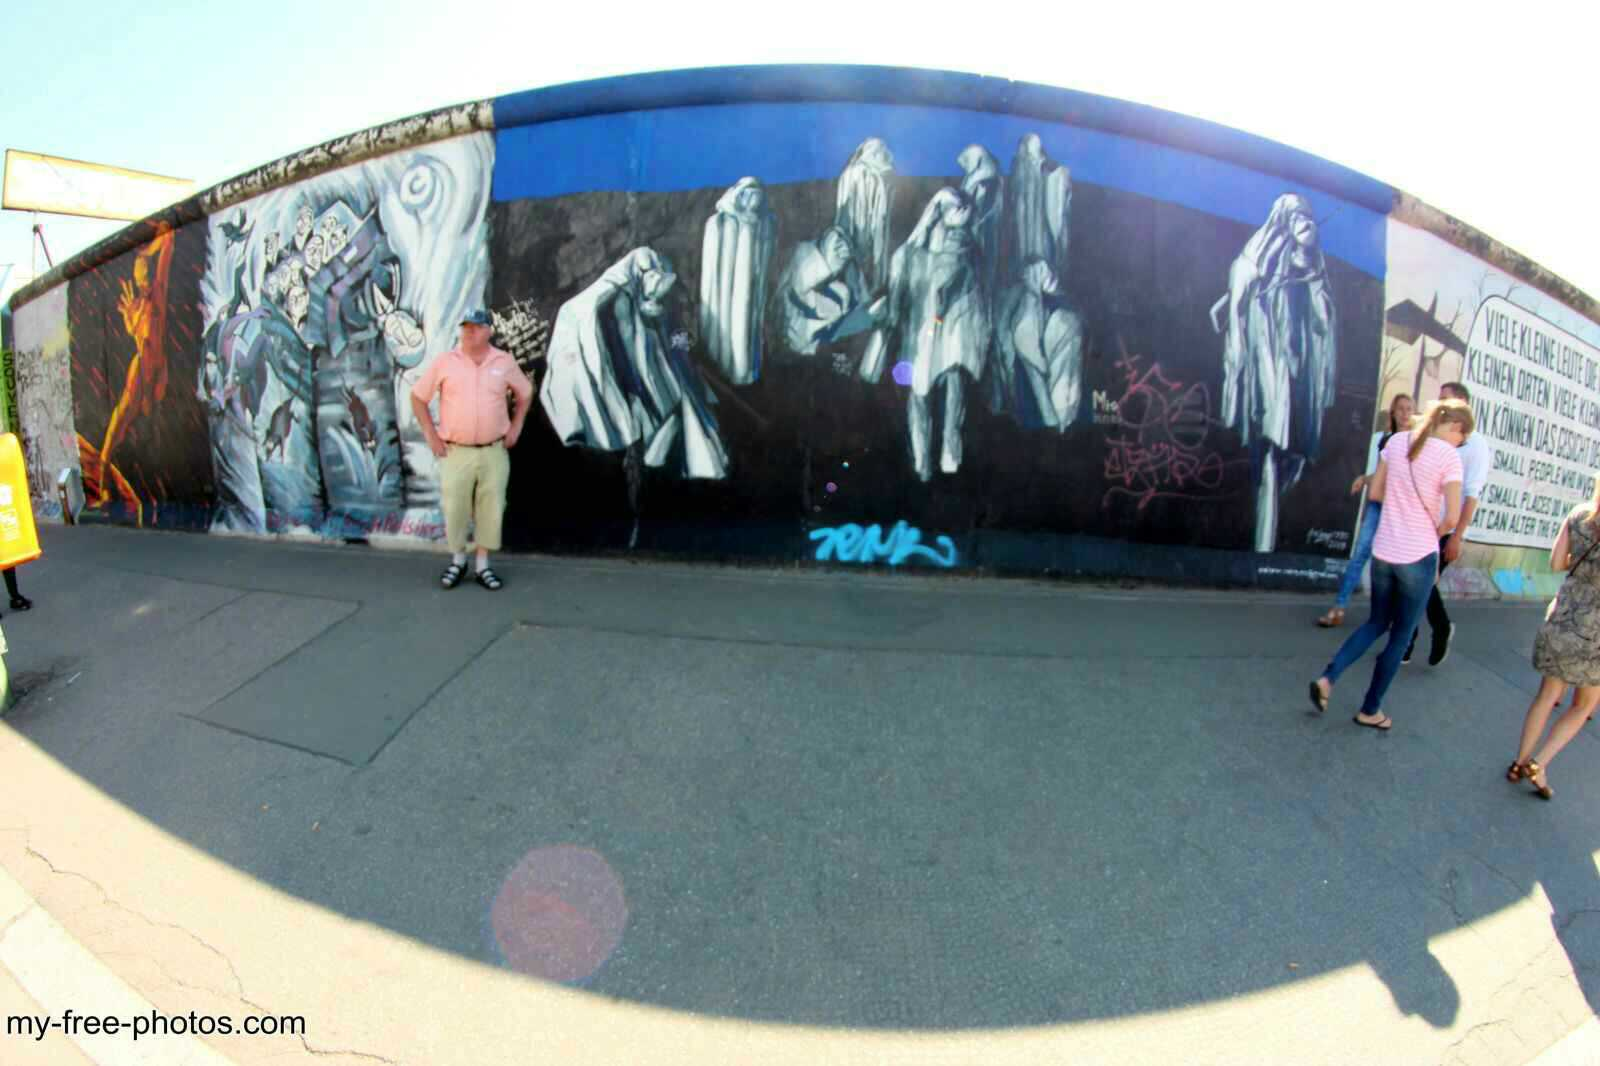 east side gallery9